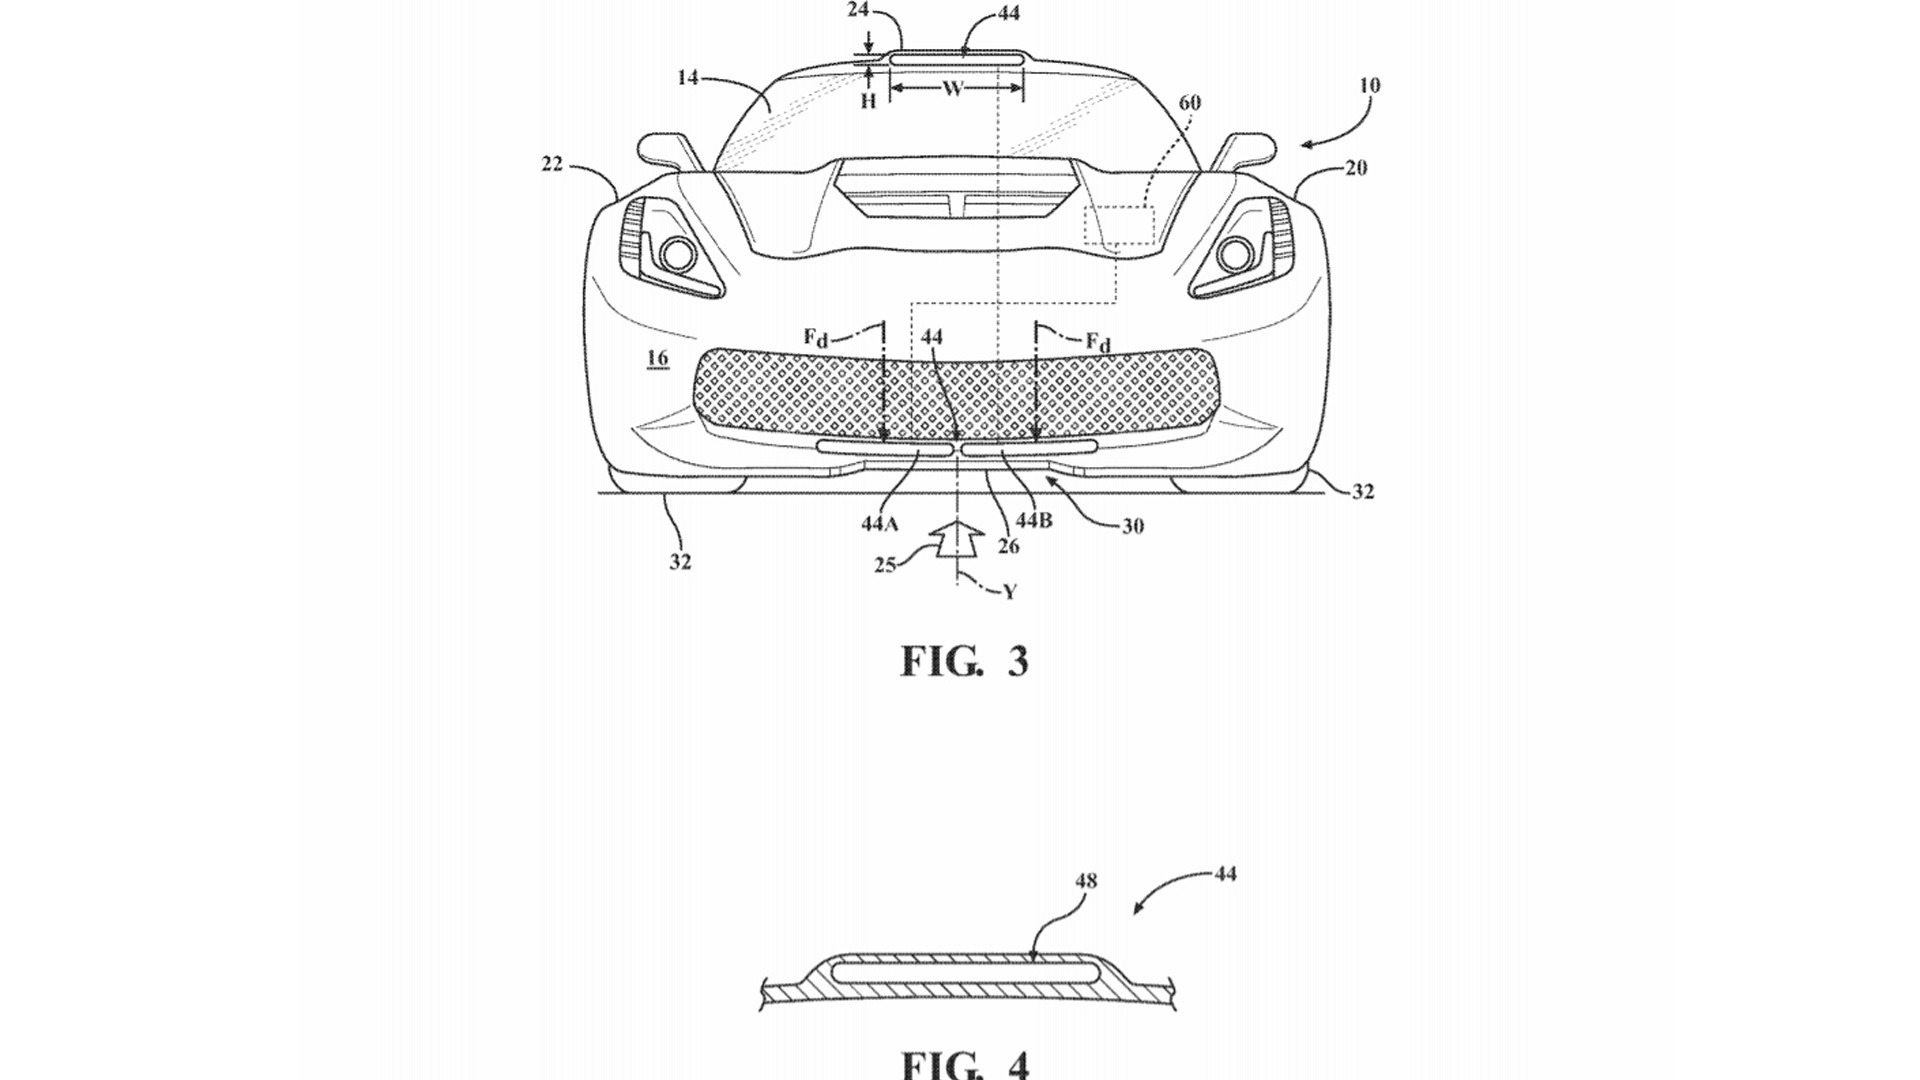 Patent for Downforce Generating Duct filed by General Motors